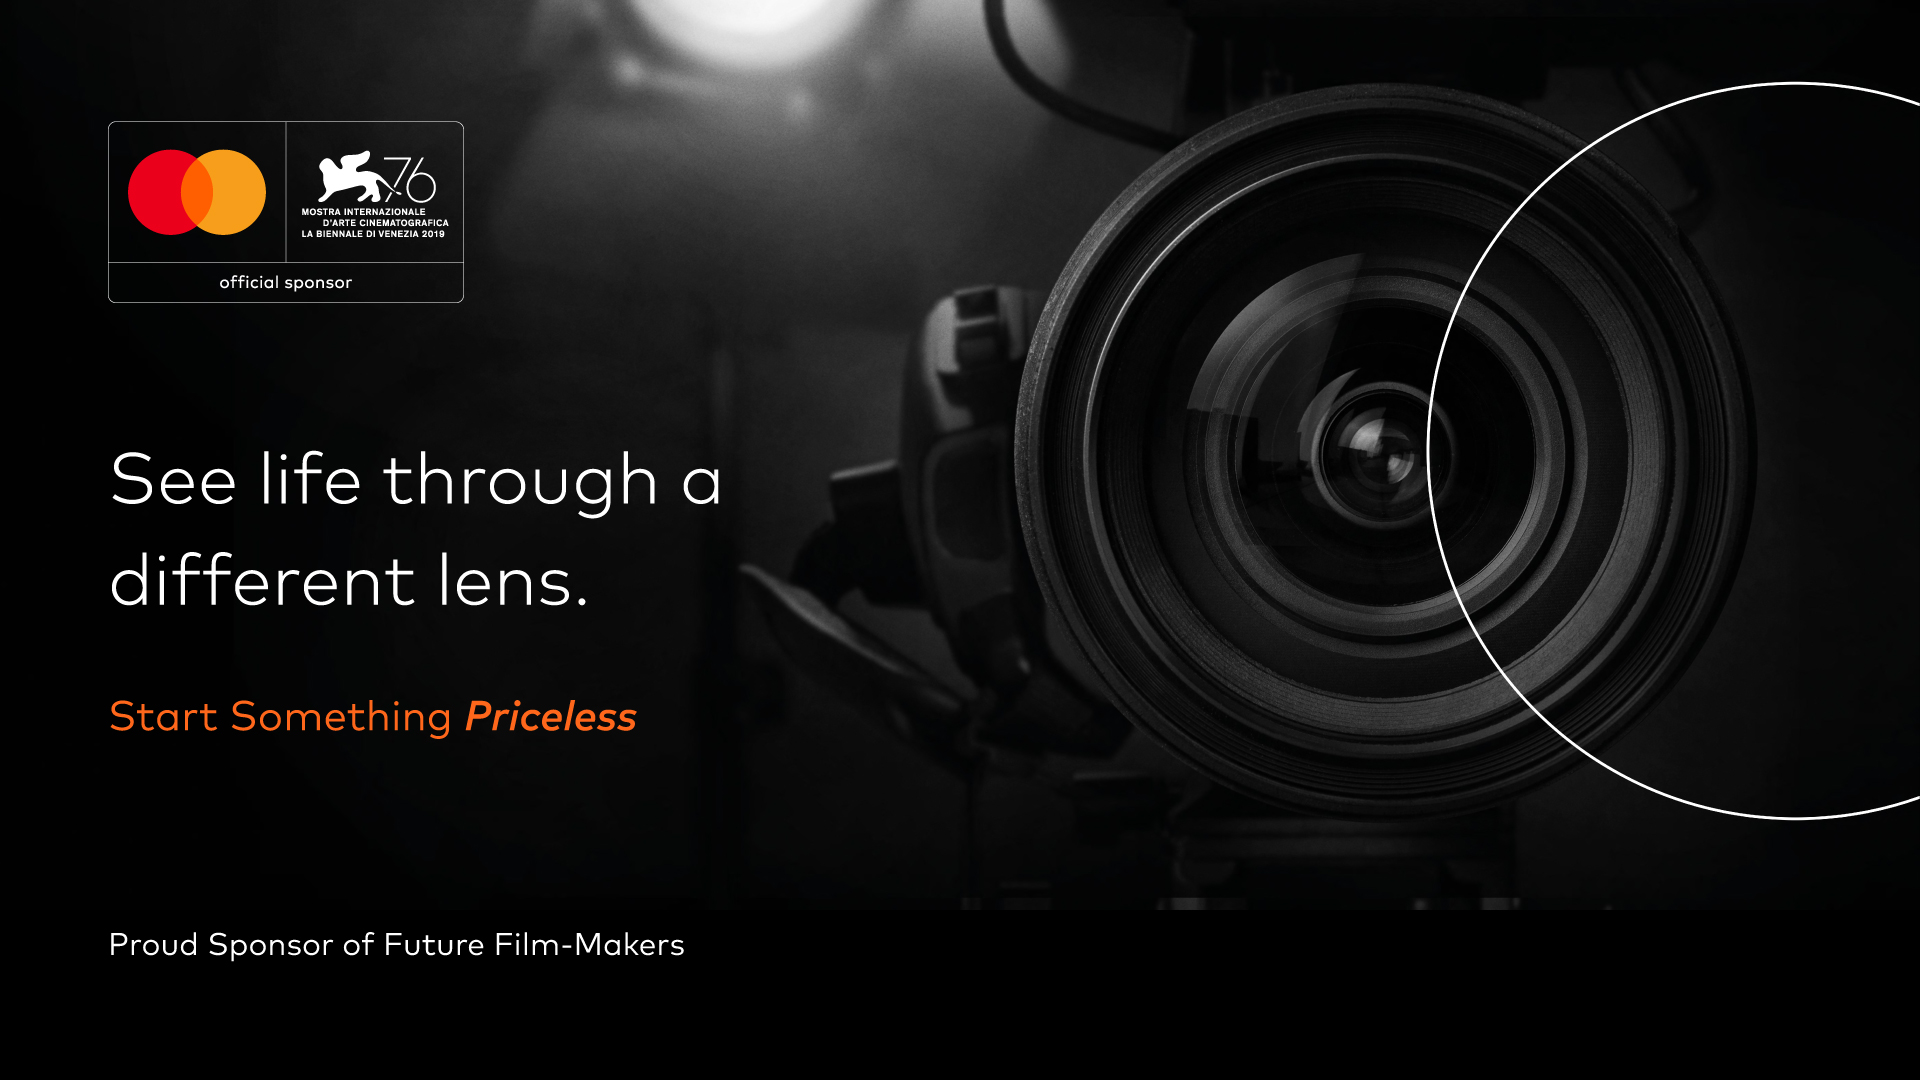 Mastercard is pleased to unveil an exclusive event at the 76th Venice International Film Festival